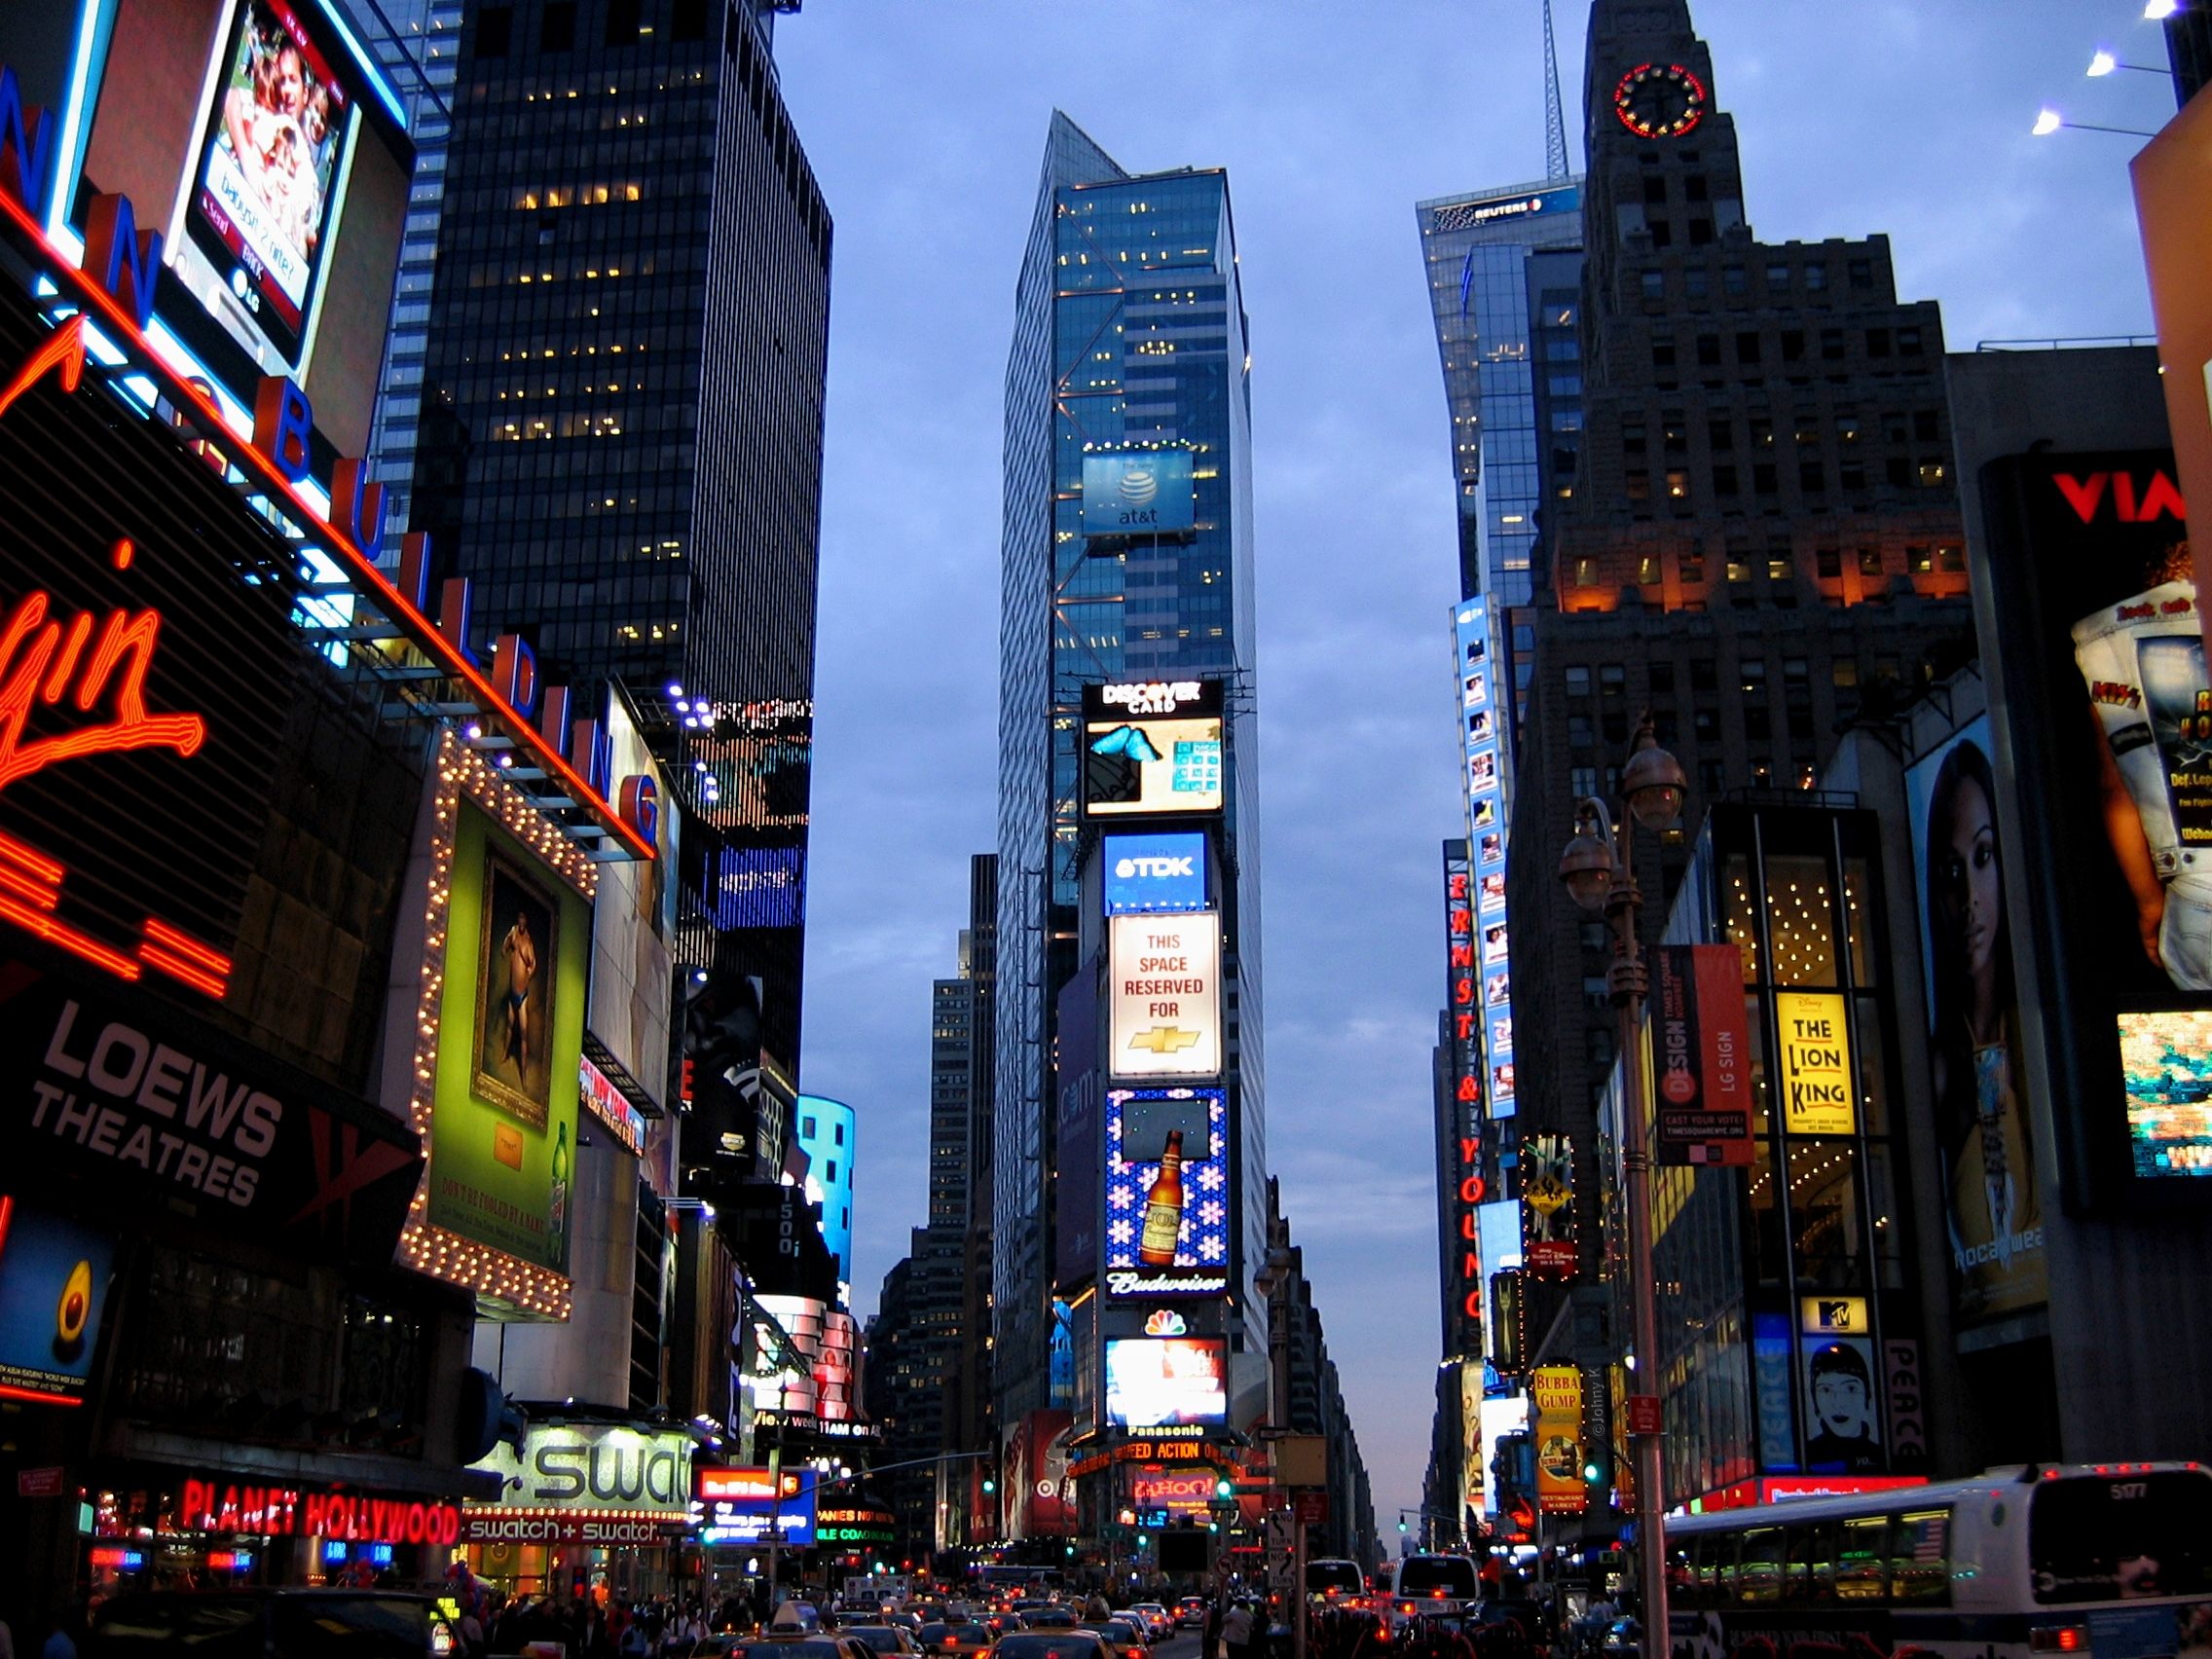 File:Times Square New York At Dusk.jpg - Wikimedia Commons